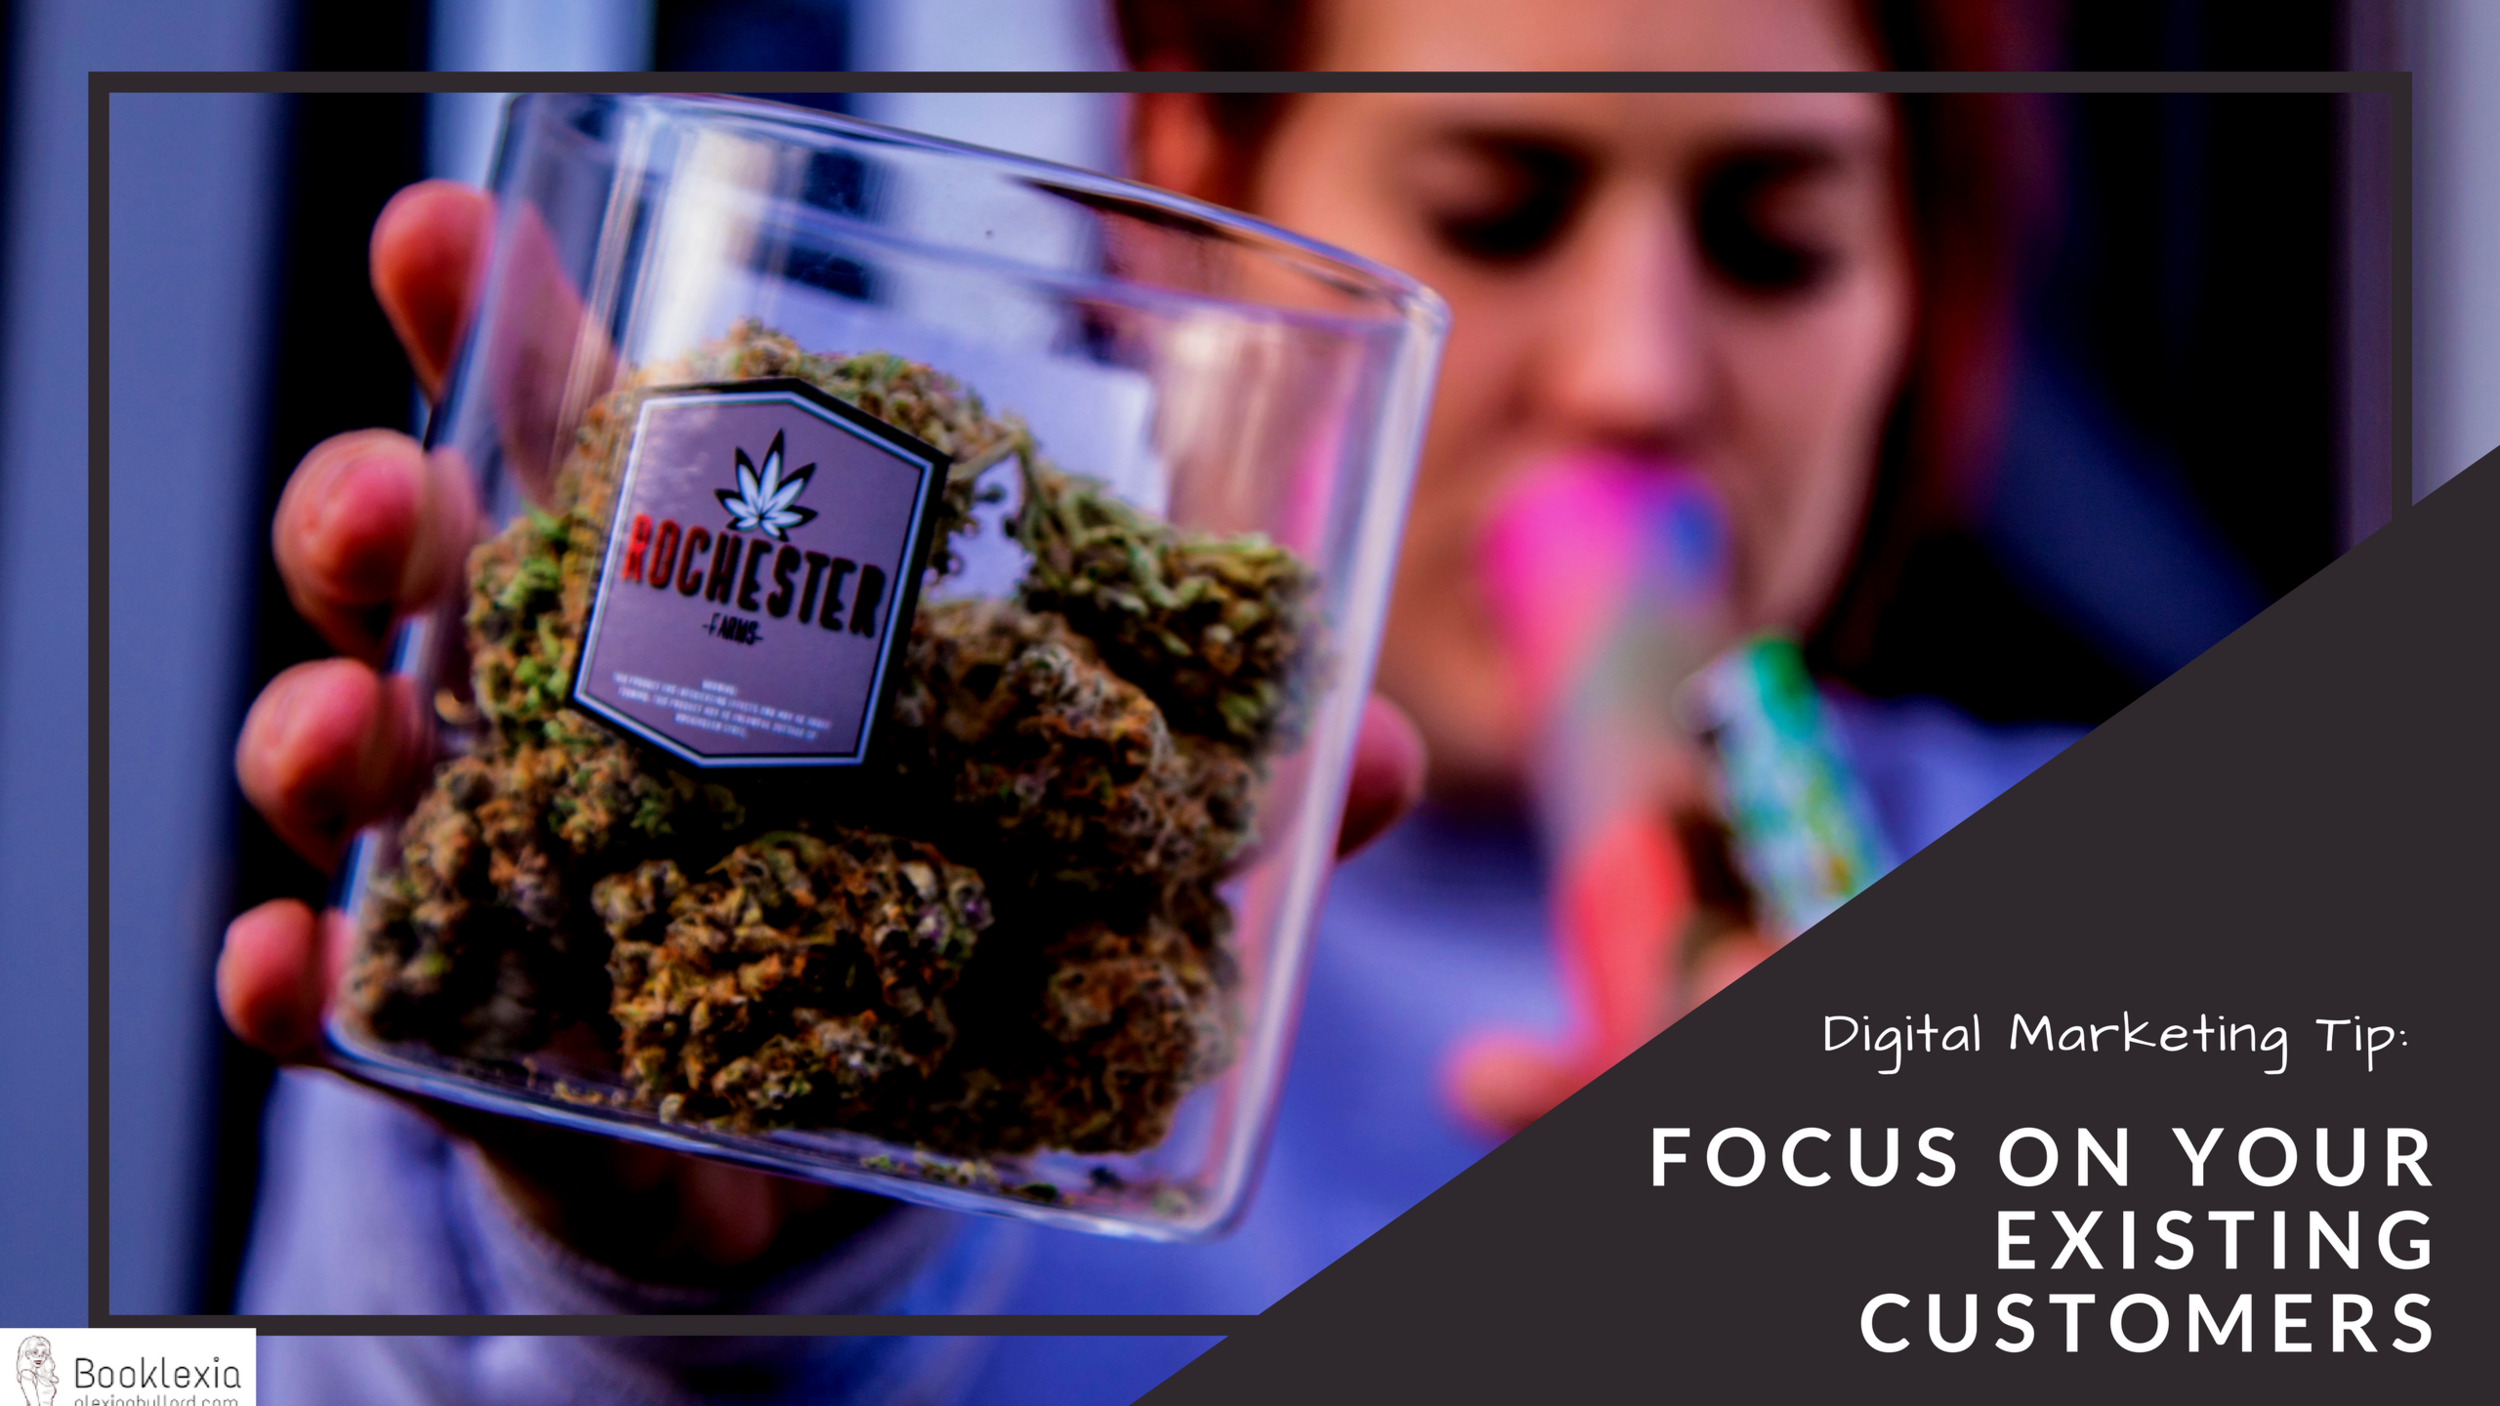 Digital Marketing Tips for Dispensaries - Focus on Your Existing Customers